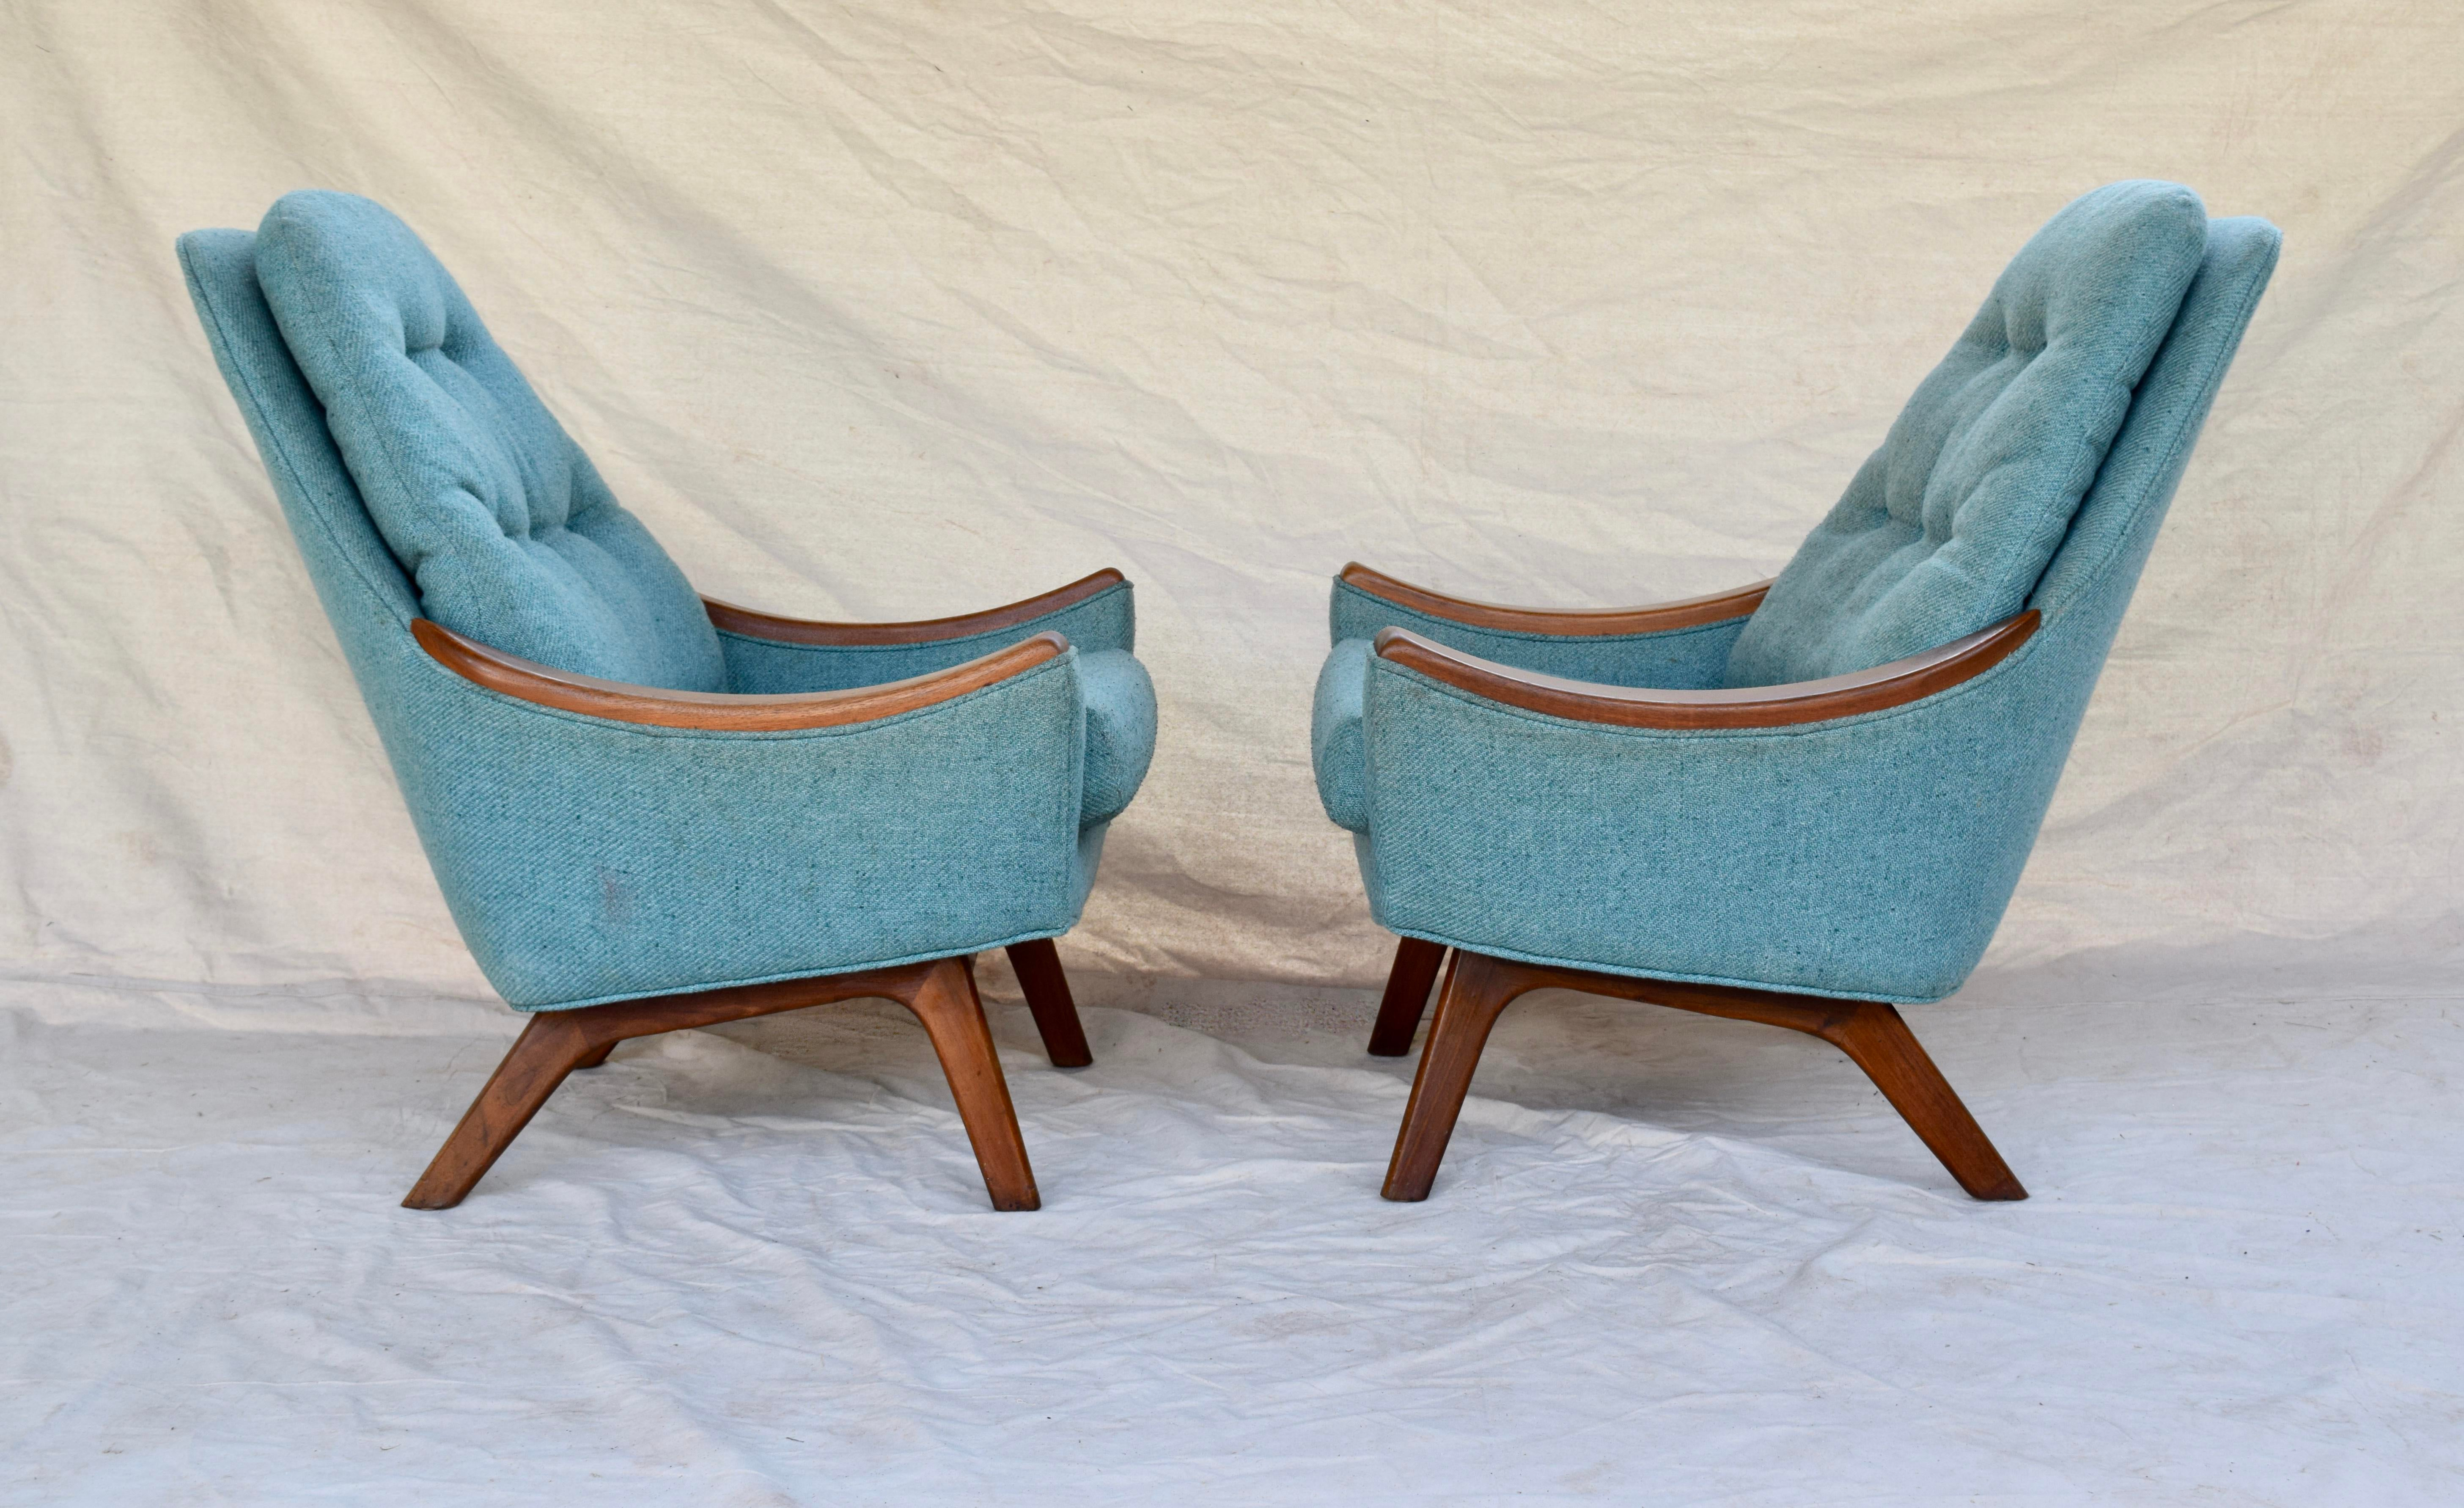 adrian pearsall lounge chair large chairs for chairish sale image 10 of 12